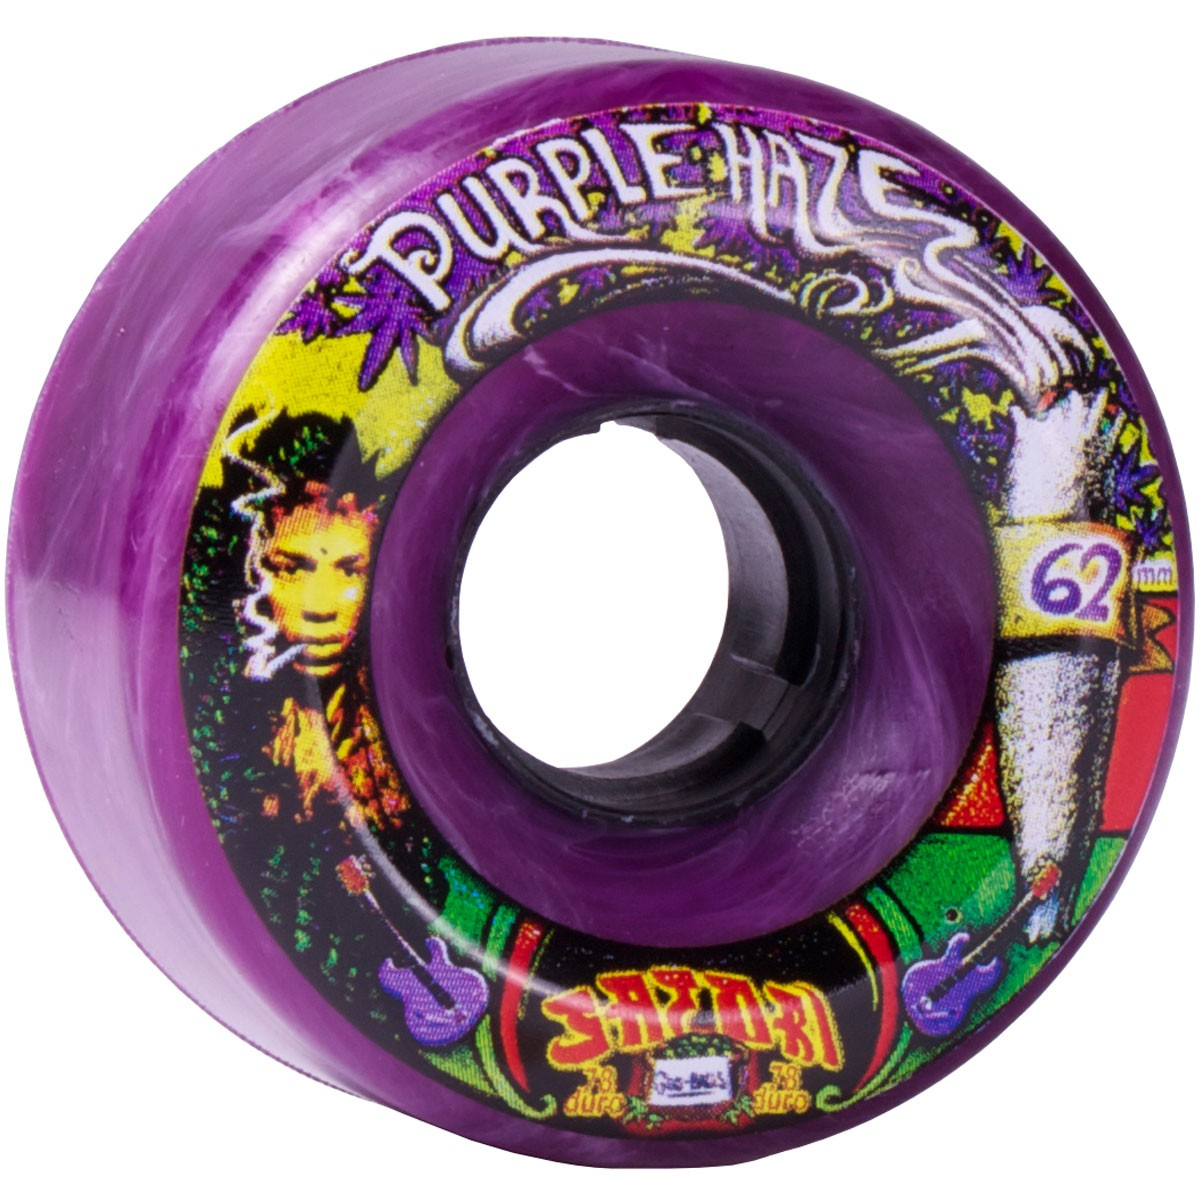 Satori Movement Goo Balls Longboard Wheels - 62mm Purple Haze